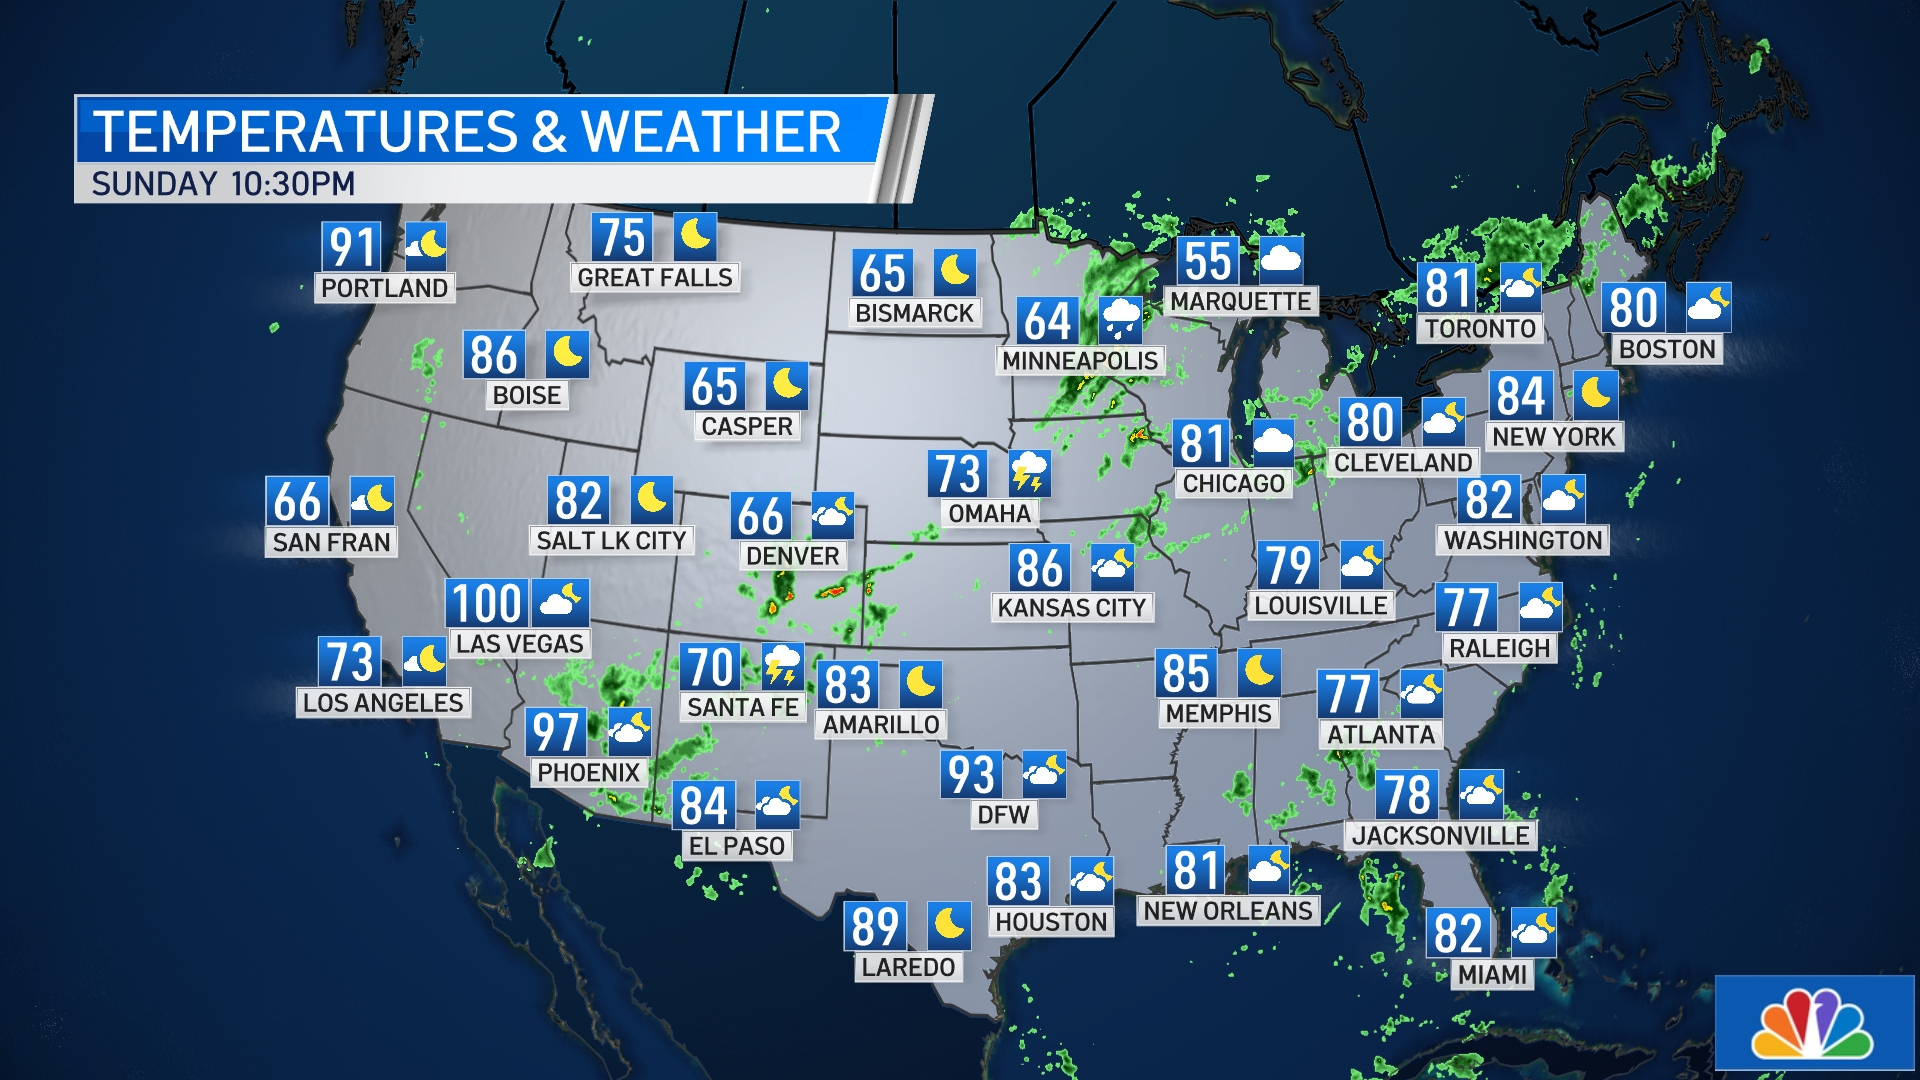 Current National Weather & Temps